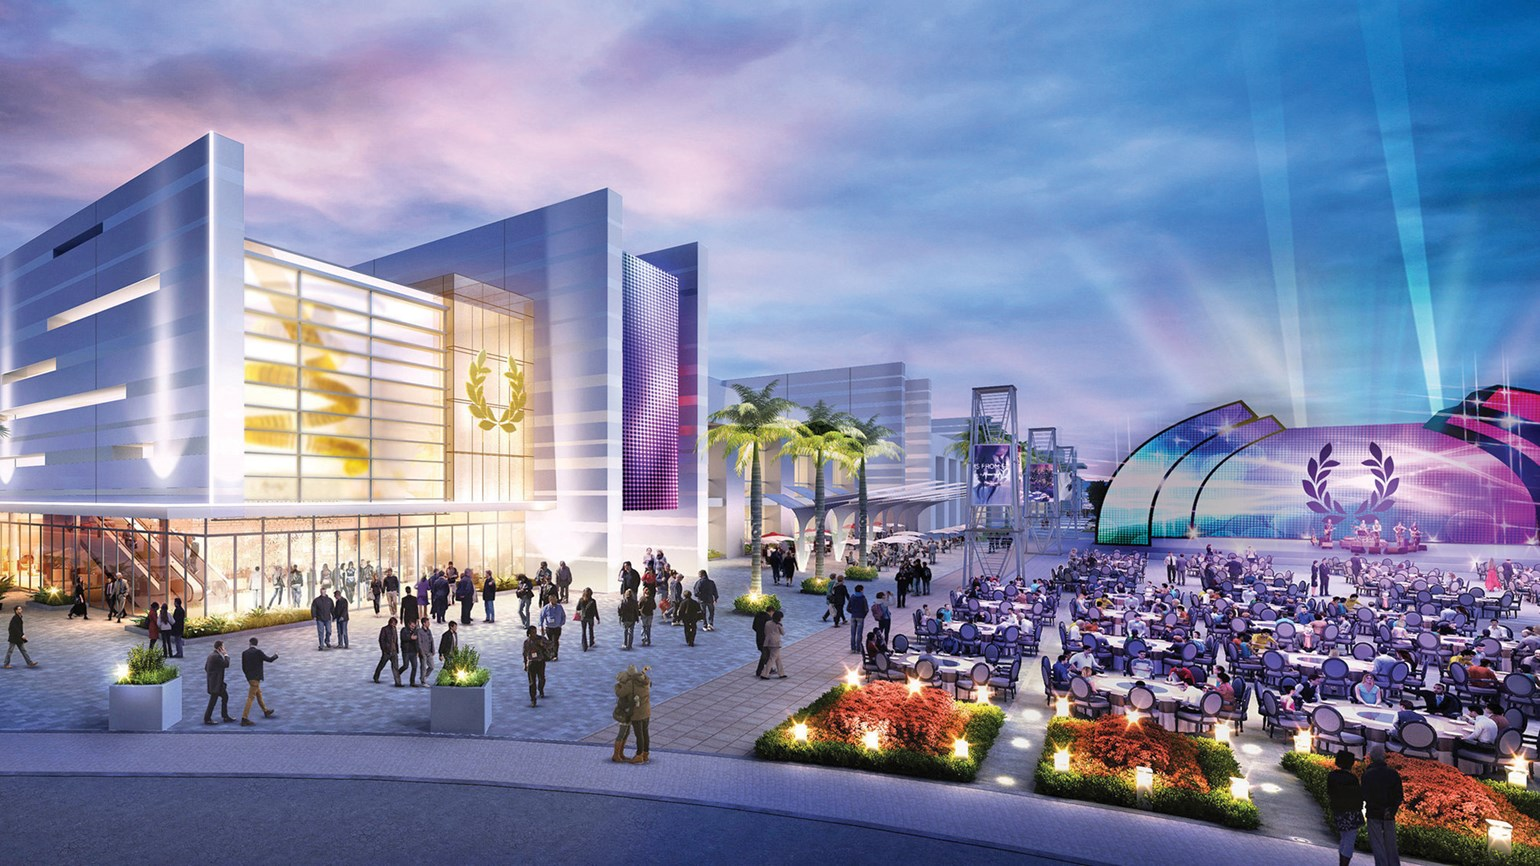 Caesars takes its soon-to-open conference center on tour